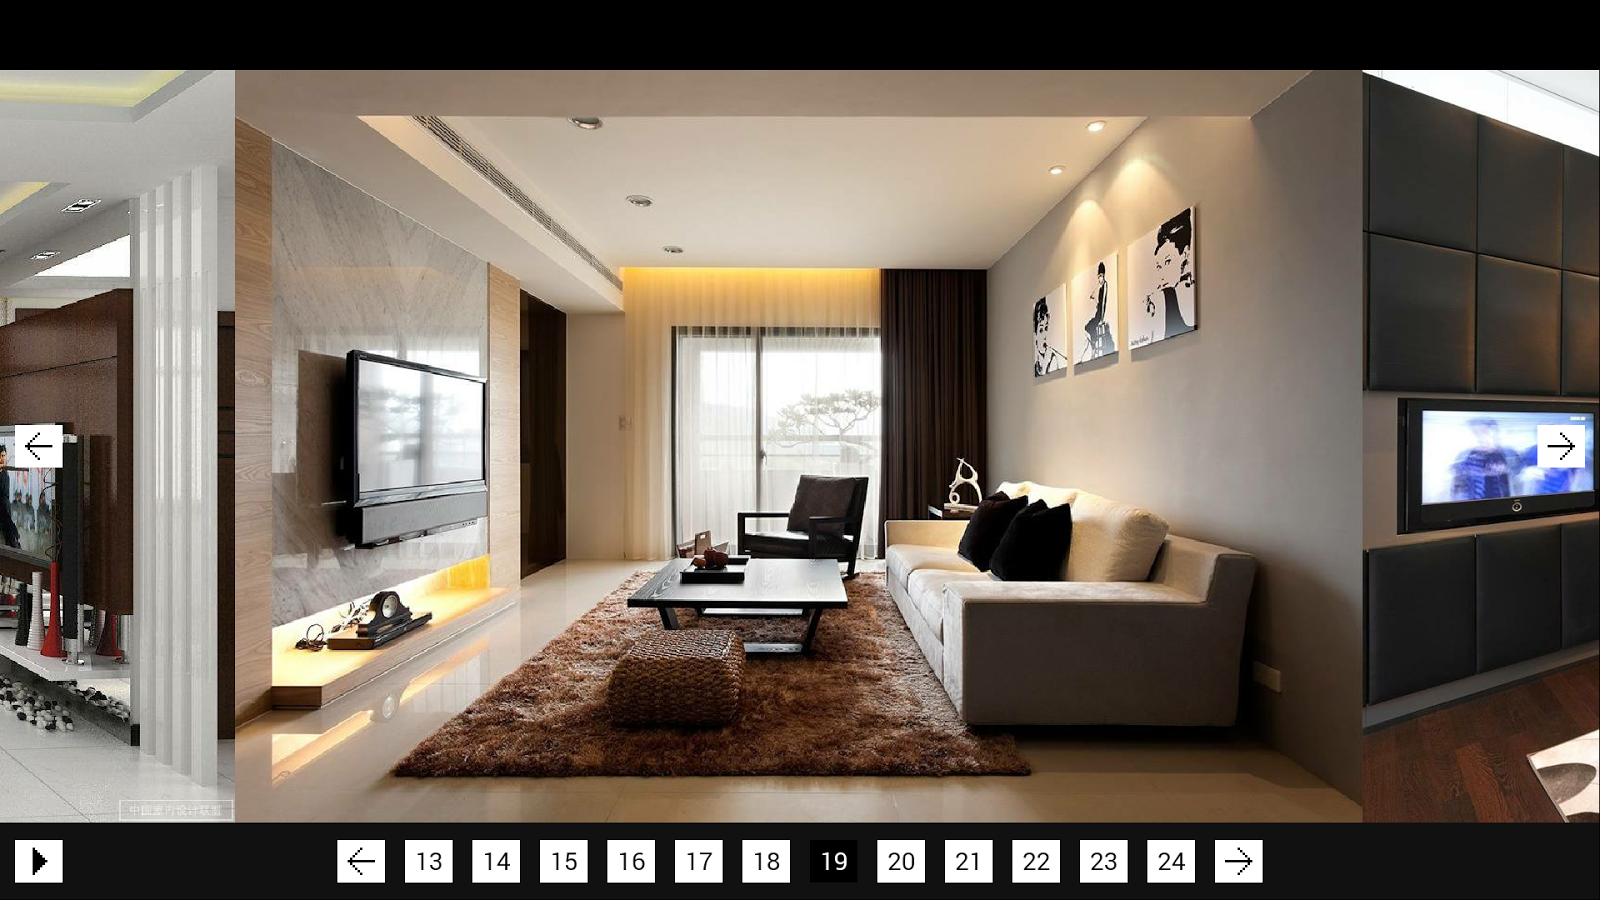 Home interior design android apps on google play Home interior design app